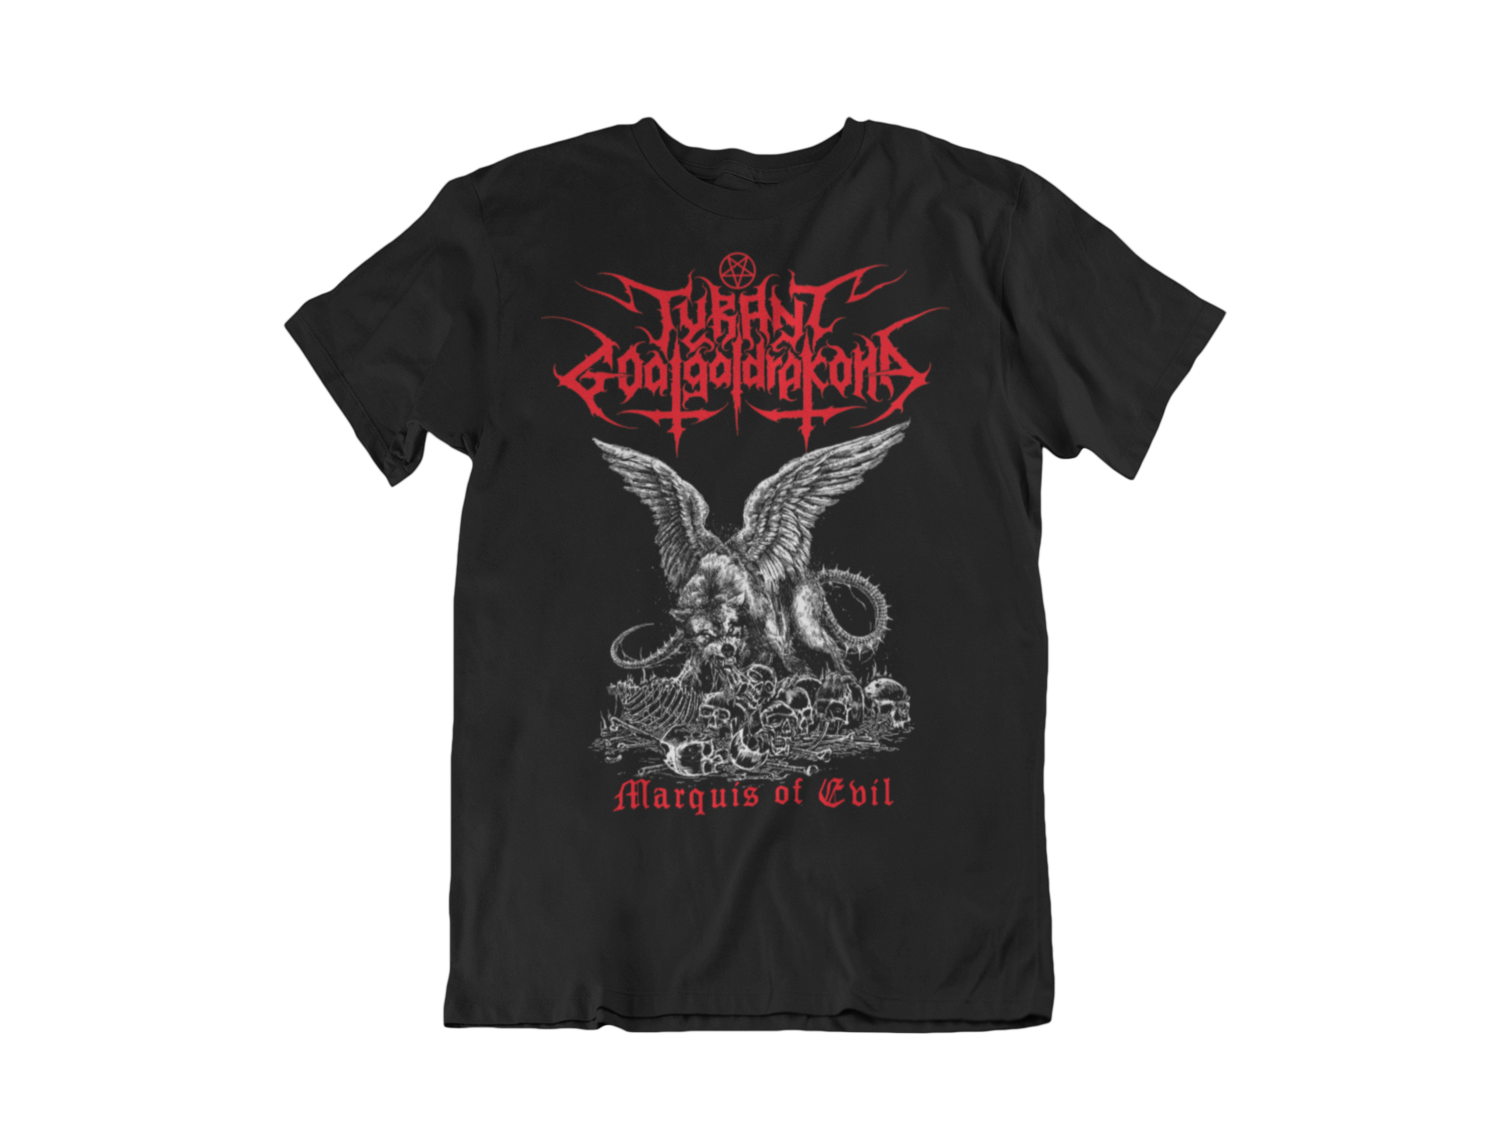 TYRANT GOATGALDRAKONA T-SHIRT MAN BLOOD HARVEST RECORDS